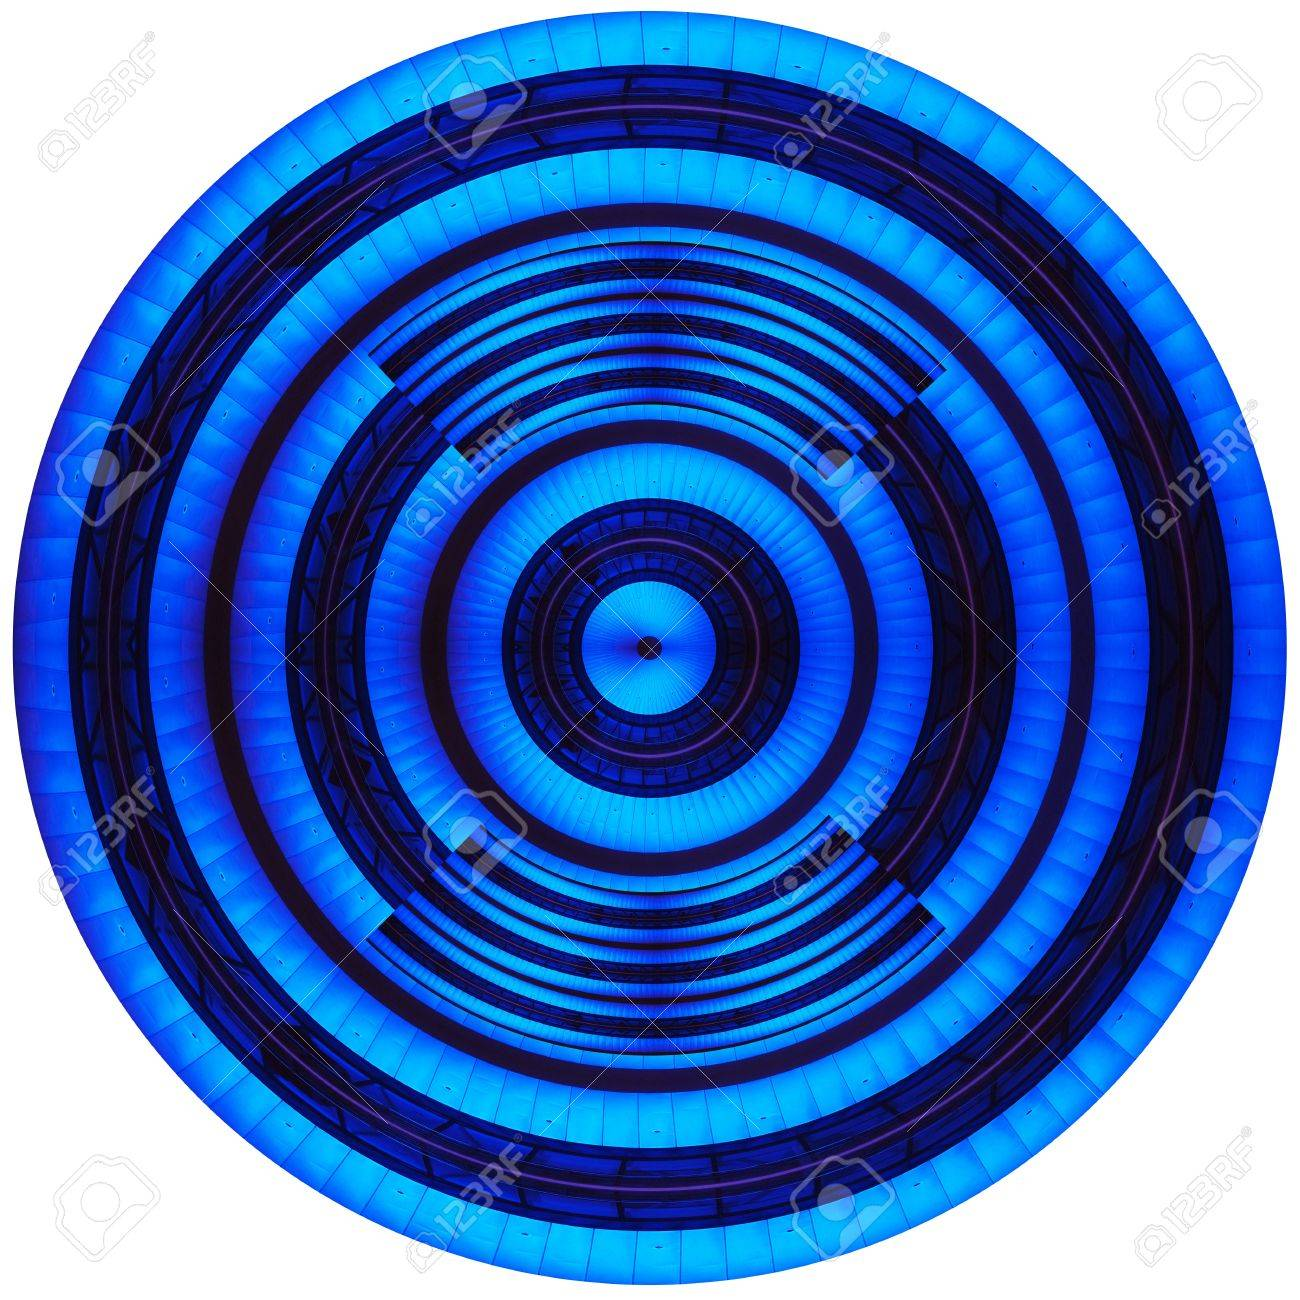 Round button and wheel in blue on the phone and on the Internet Stock Photo - 17630773